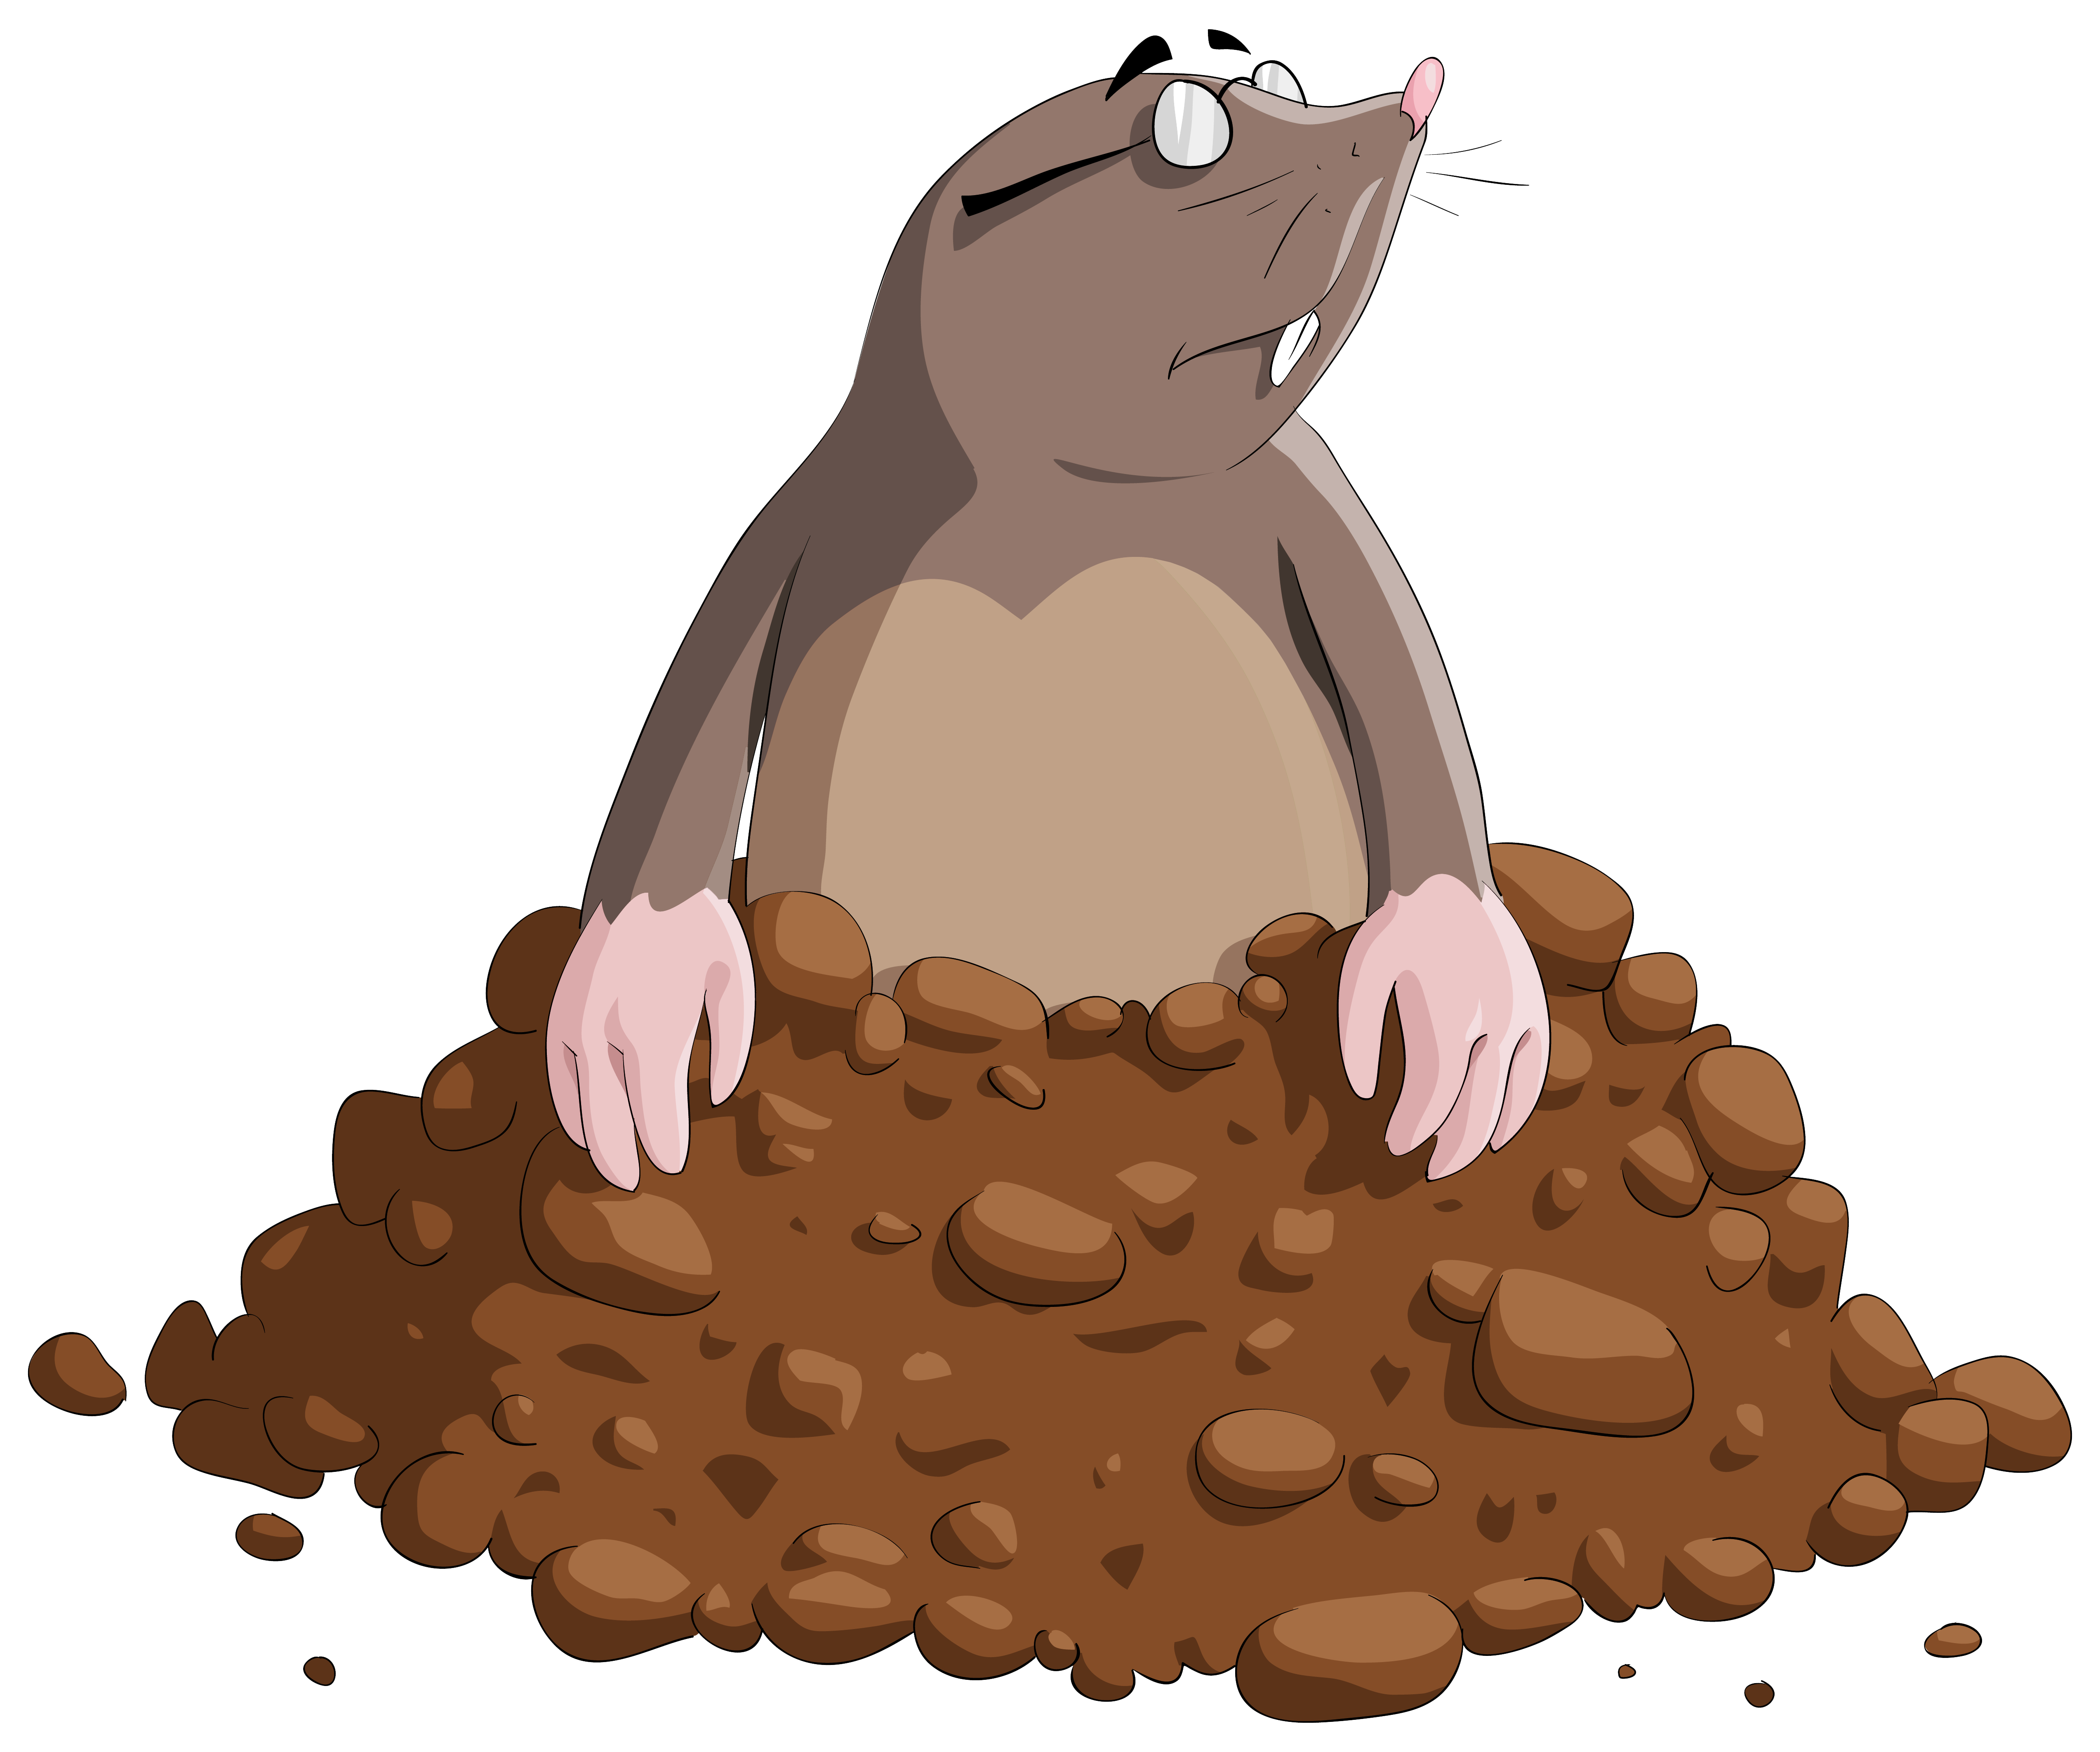 Mole clipart. Cartoon png image gallery